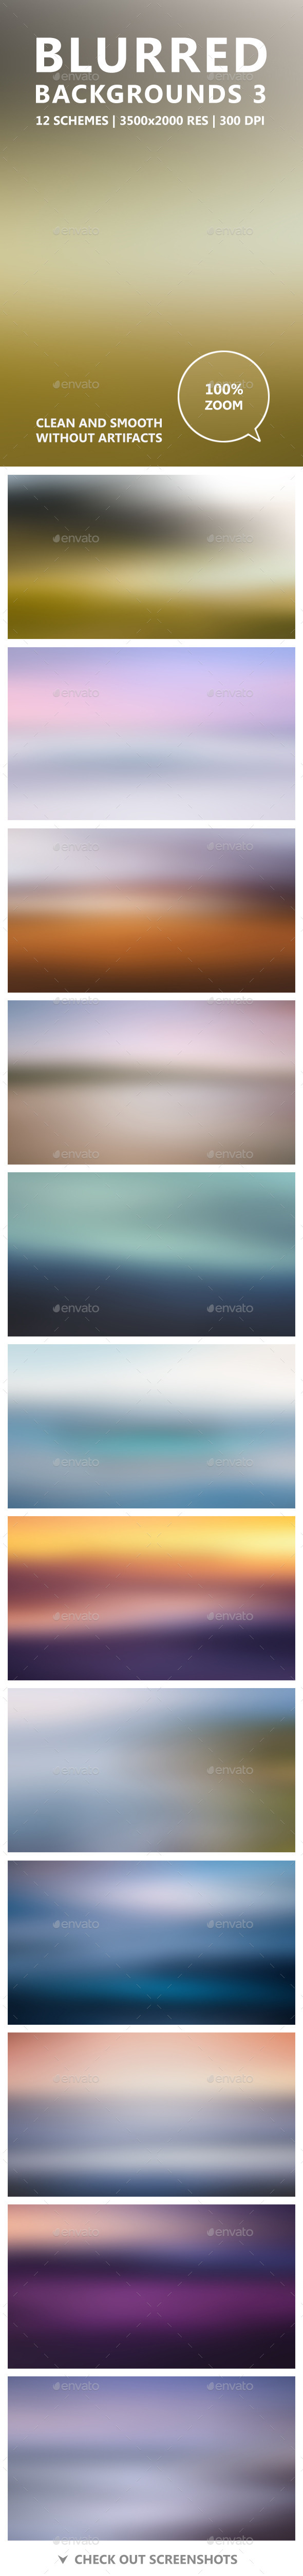 GraphicRiver Blurred Backgrounds 3 11554916